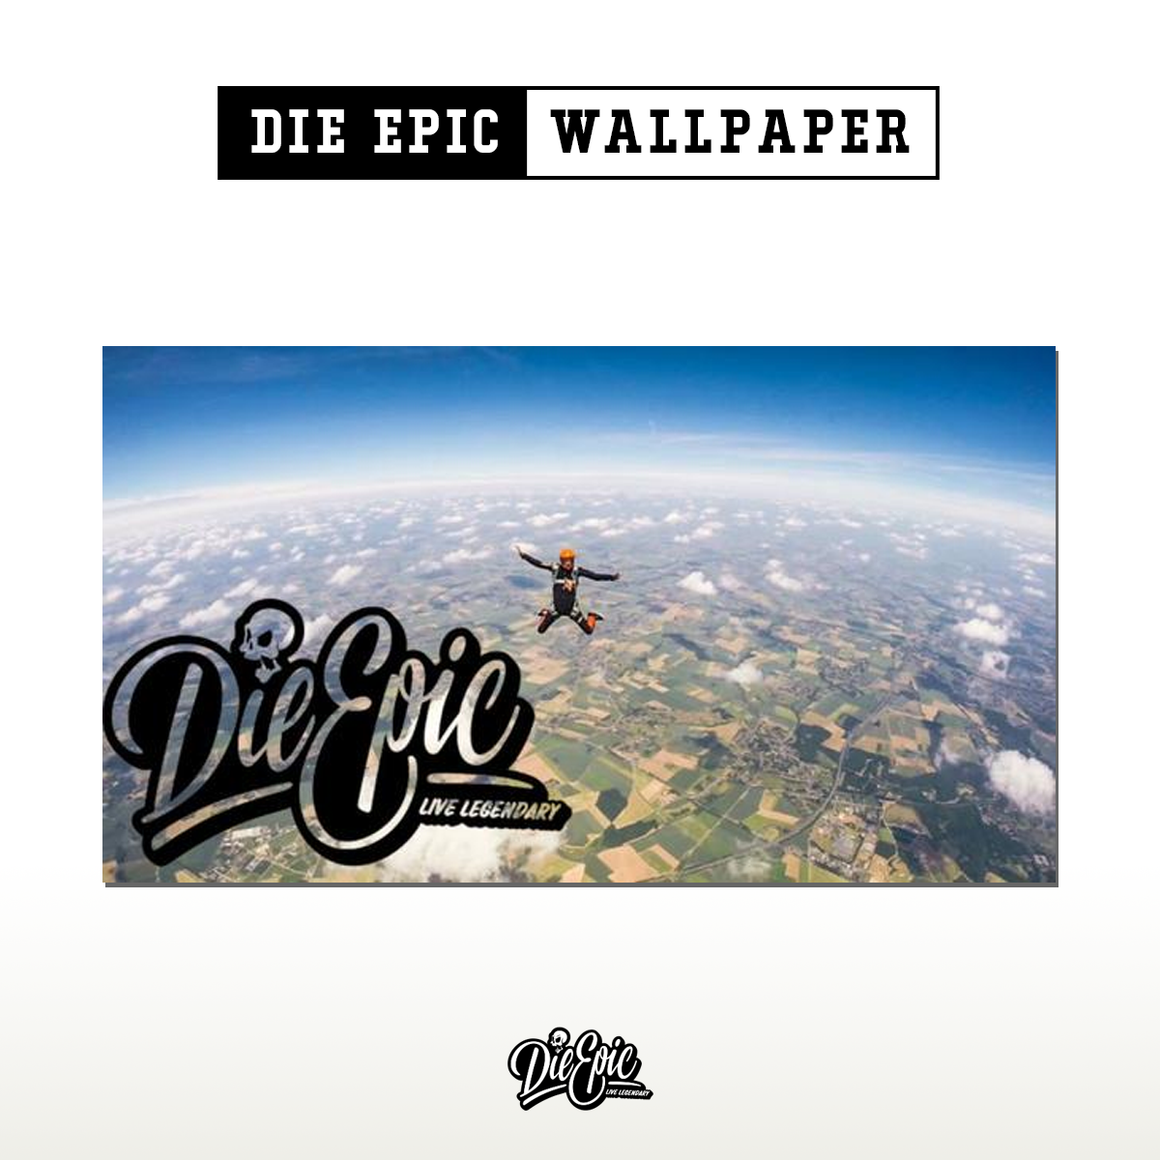 Die Epic Wallpaper HD